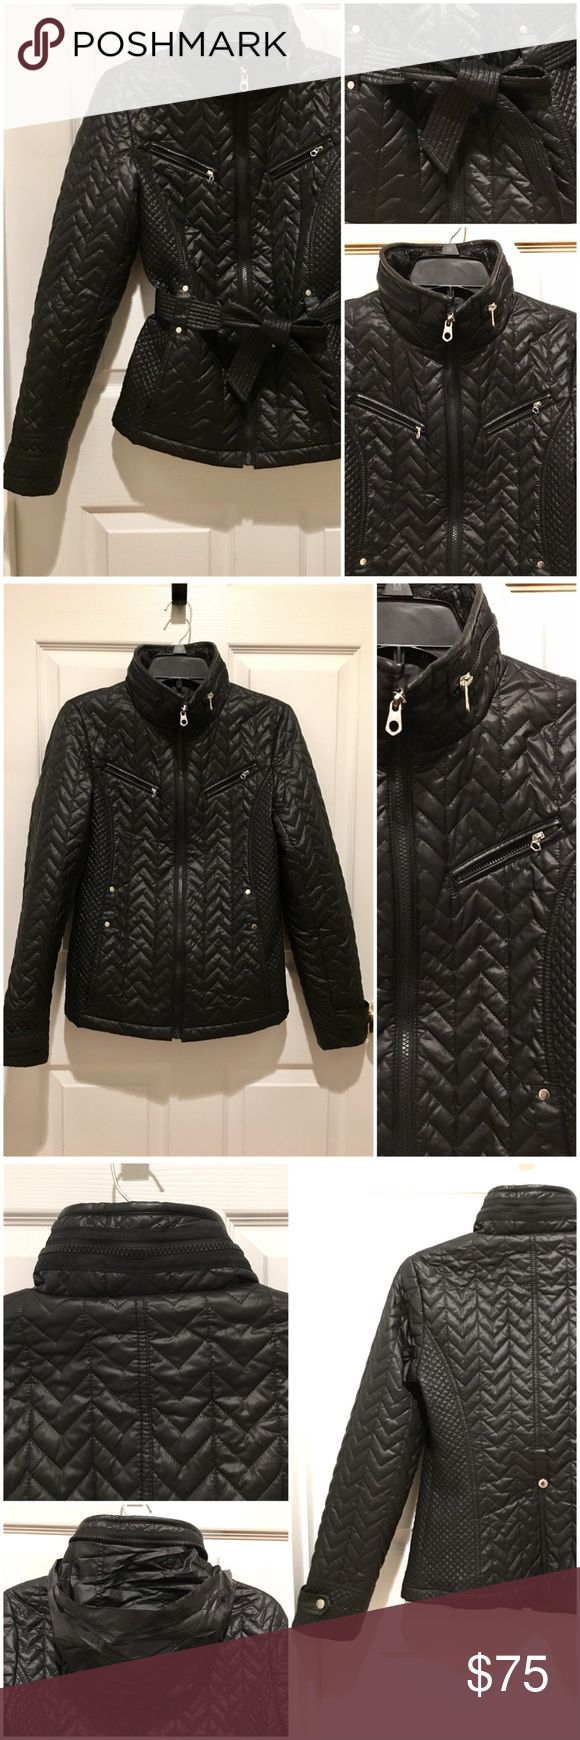 Nautica Quilted Black Coat | Size XS With Faux Leather-trim, this quilted wind-repellent jacket is lightweight, perfect for transitional weather - Removable / adjustable sash belt accentuates the waistline for a flattering silhouette - Flexible scuba neckline with Zip-out hood - Machine washable - Excellent condition, Used 5x at most - Includes original sash belt. Back center snap was sewed-in to be secured. ❤️All of my items are stored in a smoke-free home. ❤️Freebies await buyers with…